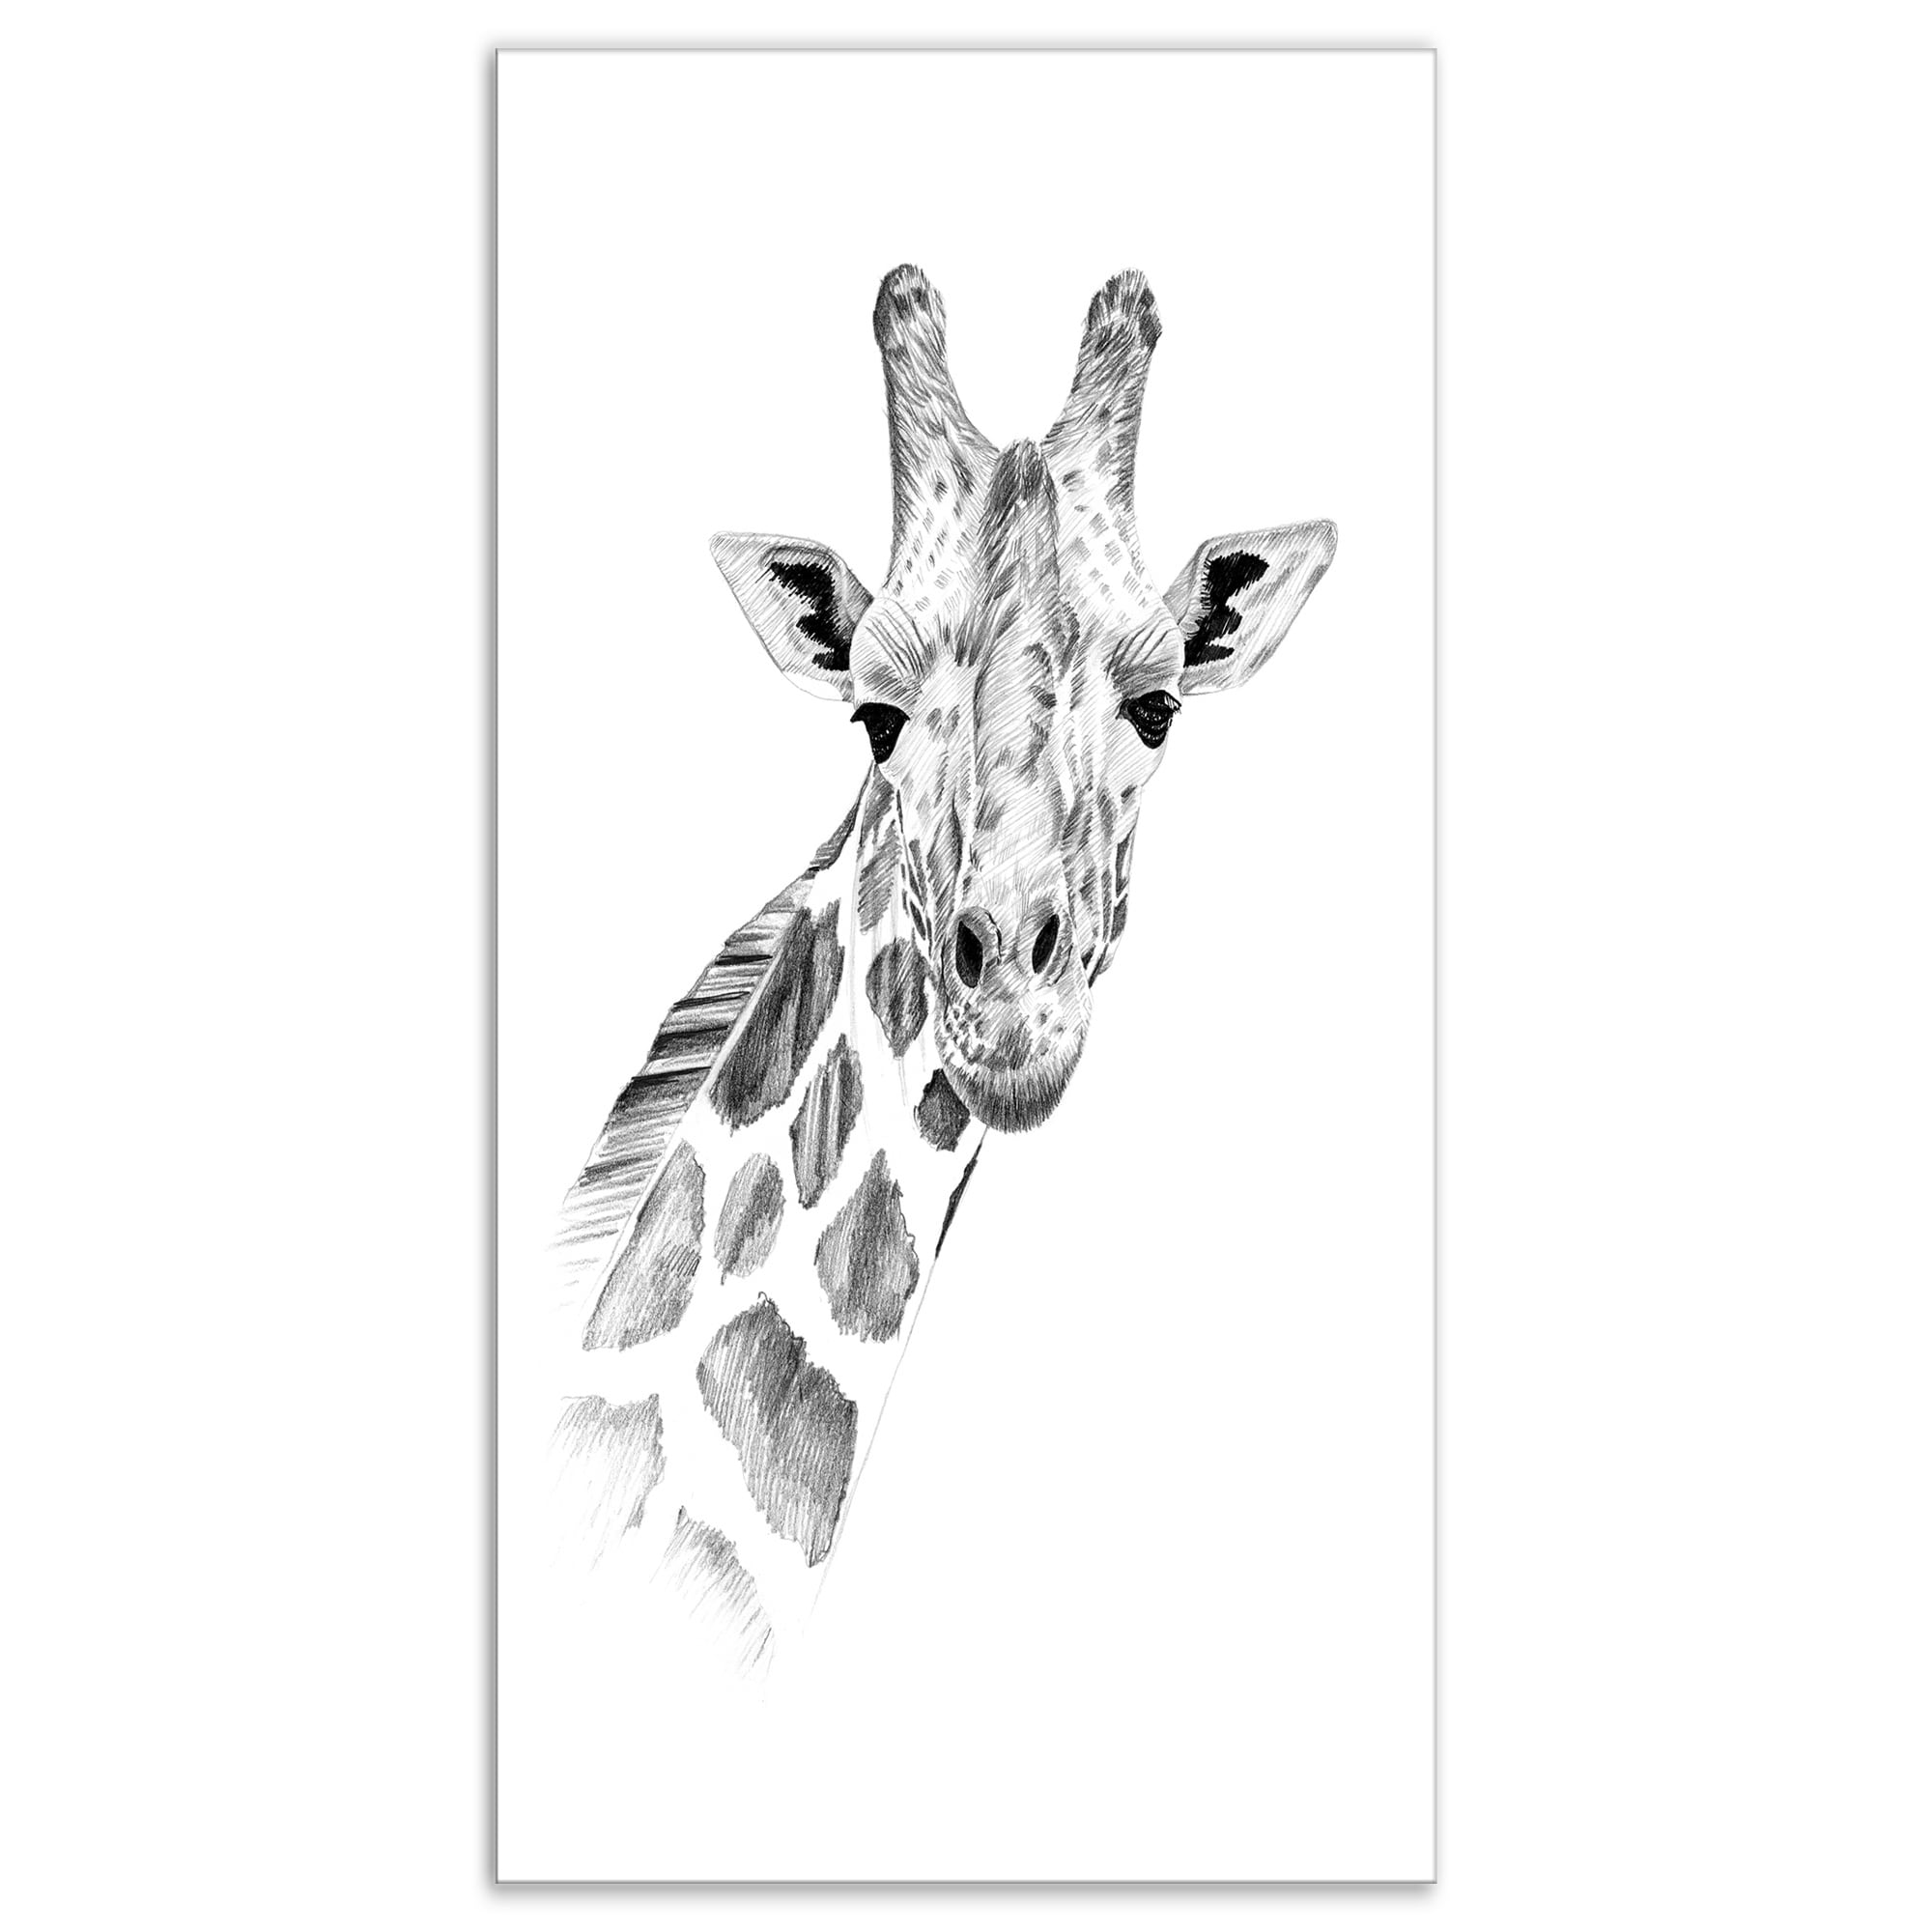 Designart pencil giraffe sketch in black and white animals painting print on wrapped canvas white